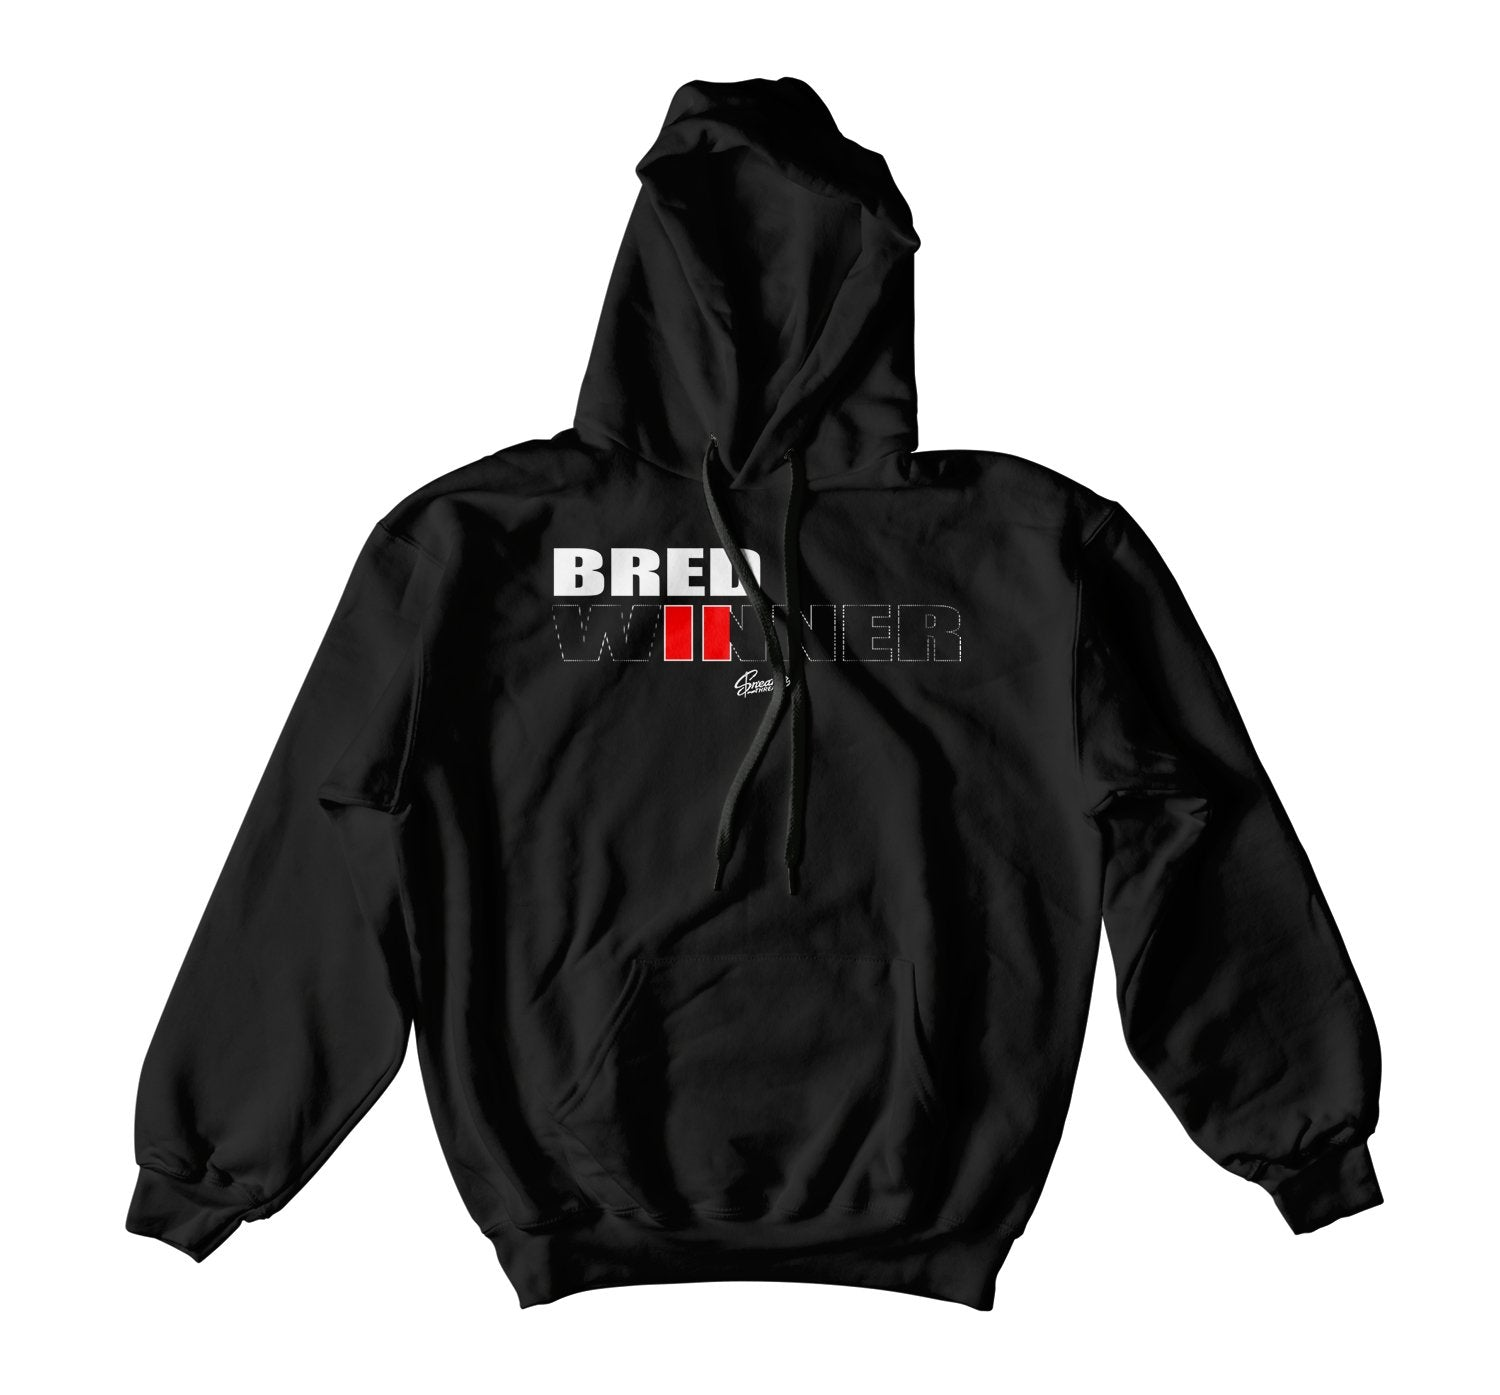 collection of hoodies designed to match the Jordan 11 bred sneaker collection